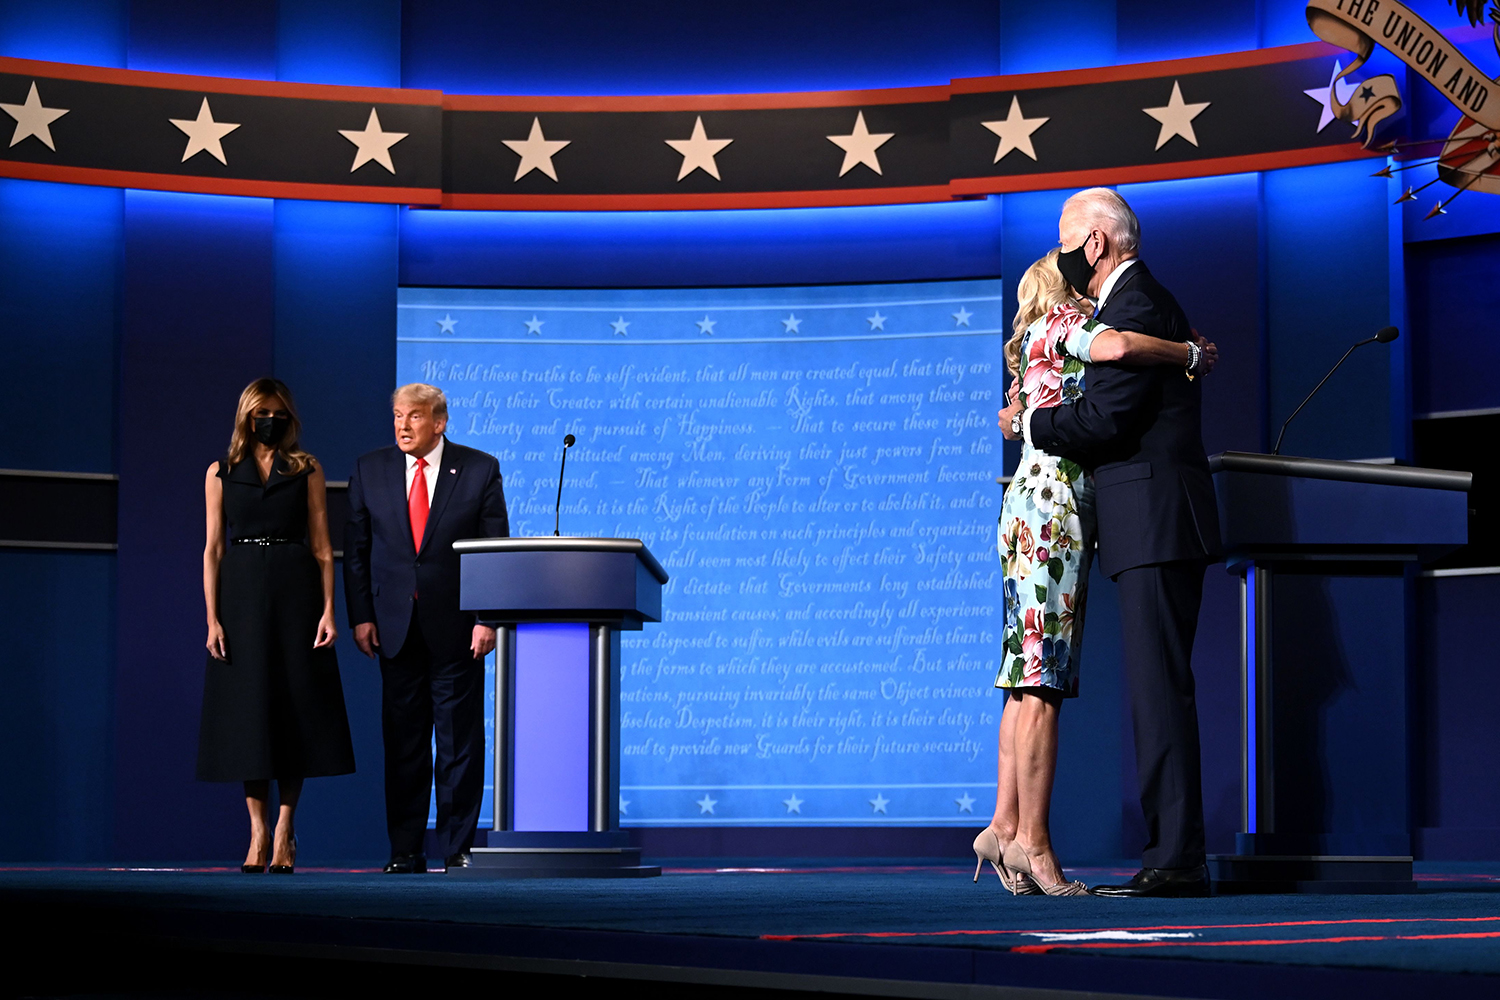 U.S. First Lady Melania Trump, far left, stands with her husband, President Donald Trump, as Jill Biden, right, hugs husband and former Vice President Joe Biden, the Democratic nominee, at the end of the final presidential debate in Nashville, Tennessee, on Oct. 22. JIM WATSON/AFP via Getty Images